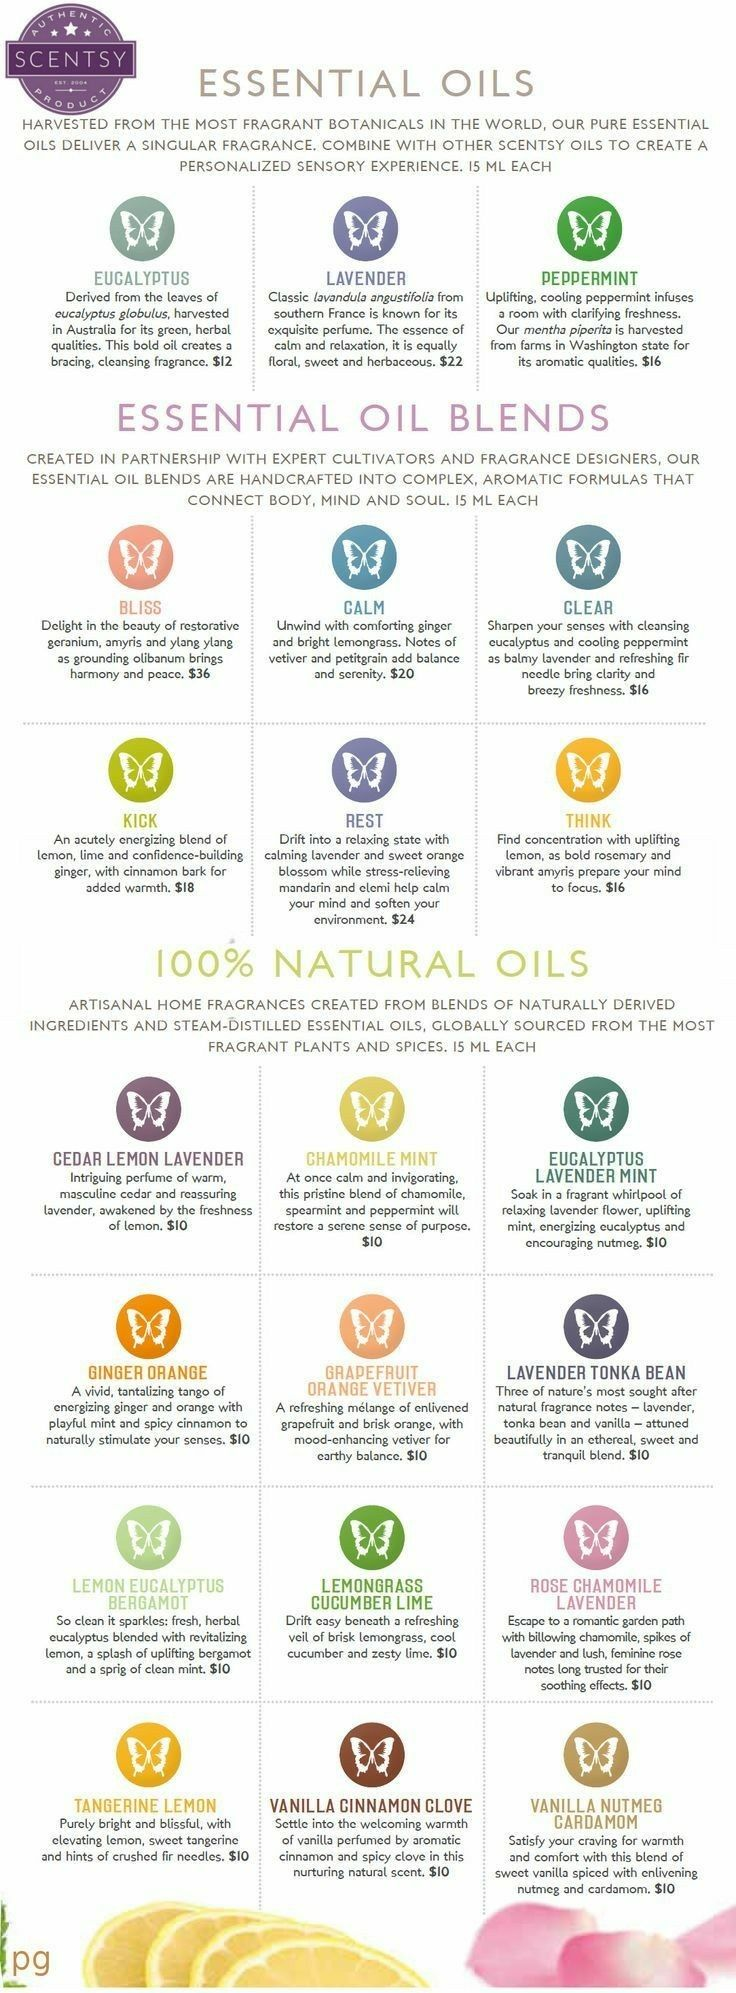 Have you tried Scentsy essential oils?! Cheap and wonderful